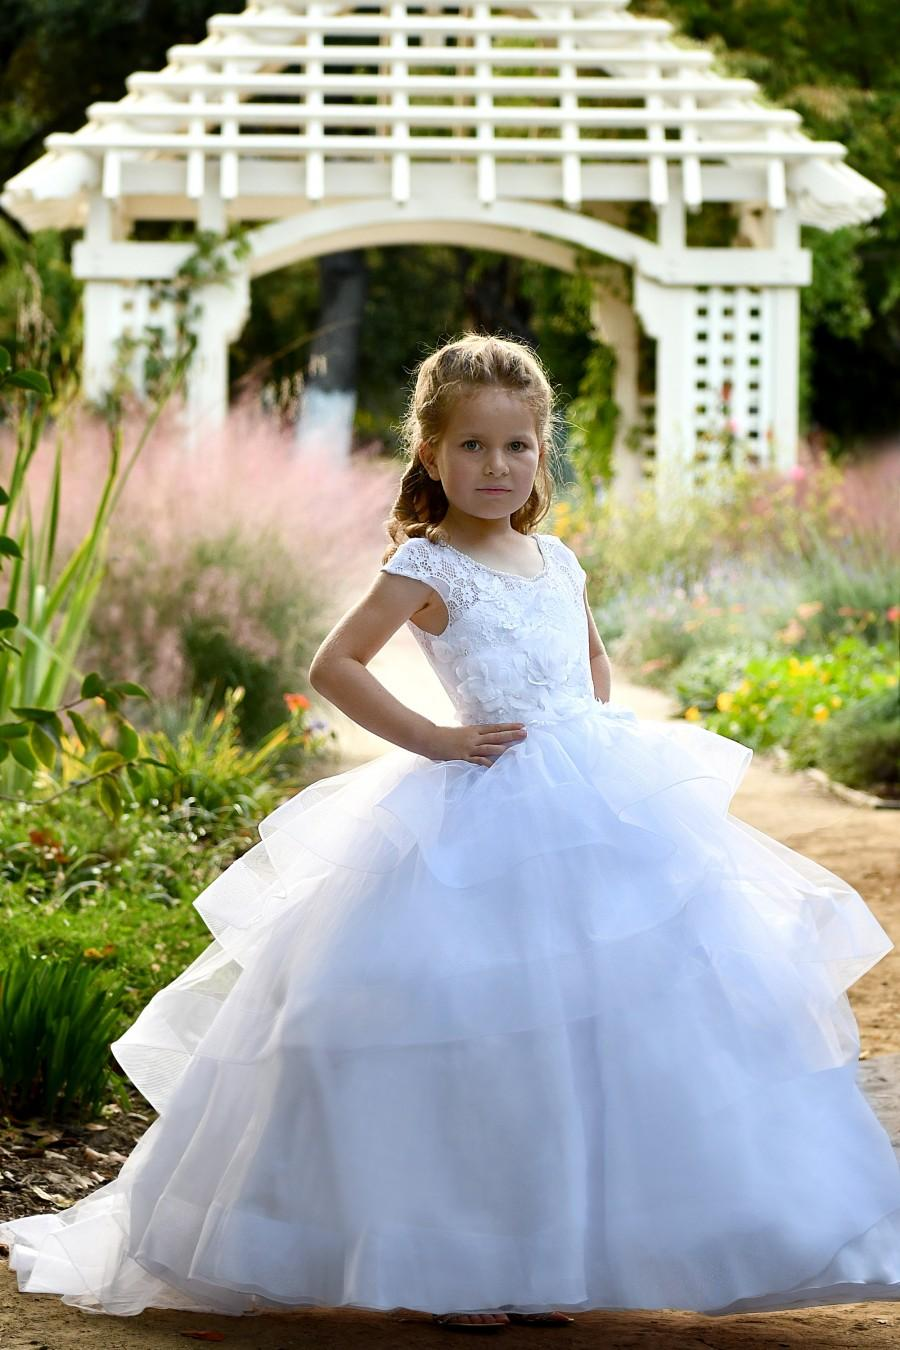 Hochzeit - White Flower girl dress Lace flower girl dresses First Communion Baptism Special occasion Princess Dress Birthday Dress Toddler girl dress